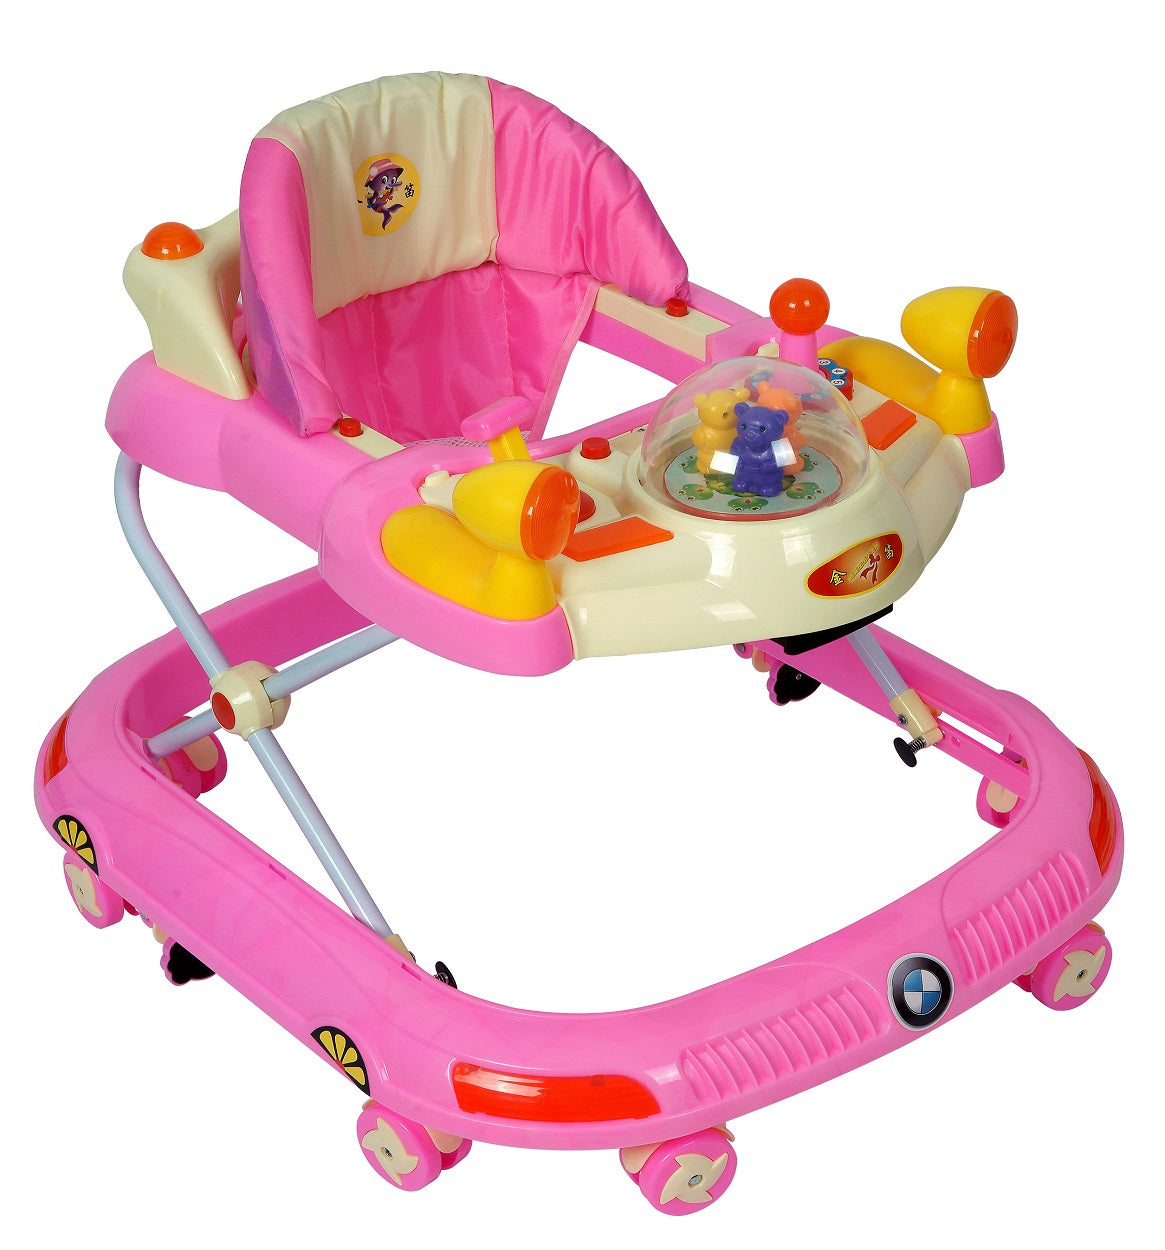 Toy, Baby Walker More Than Just Safety